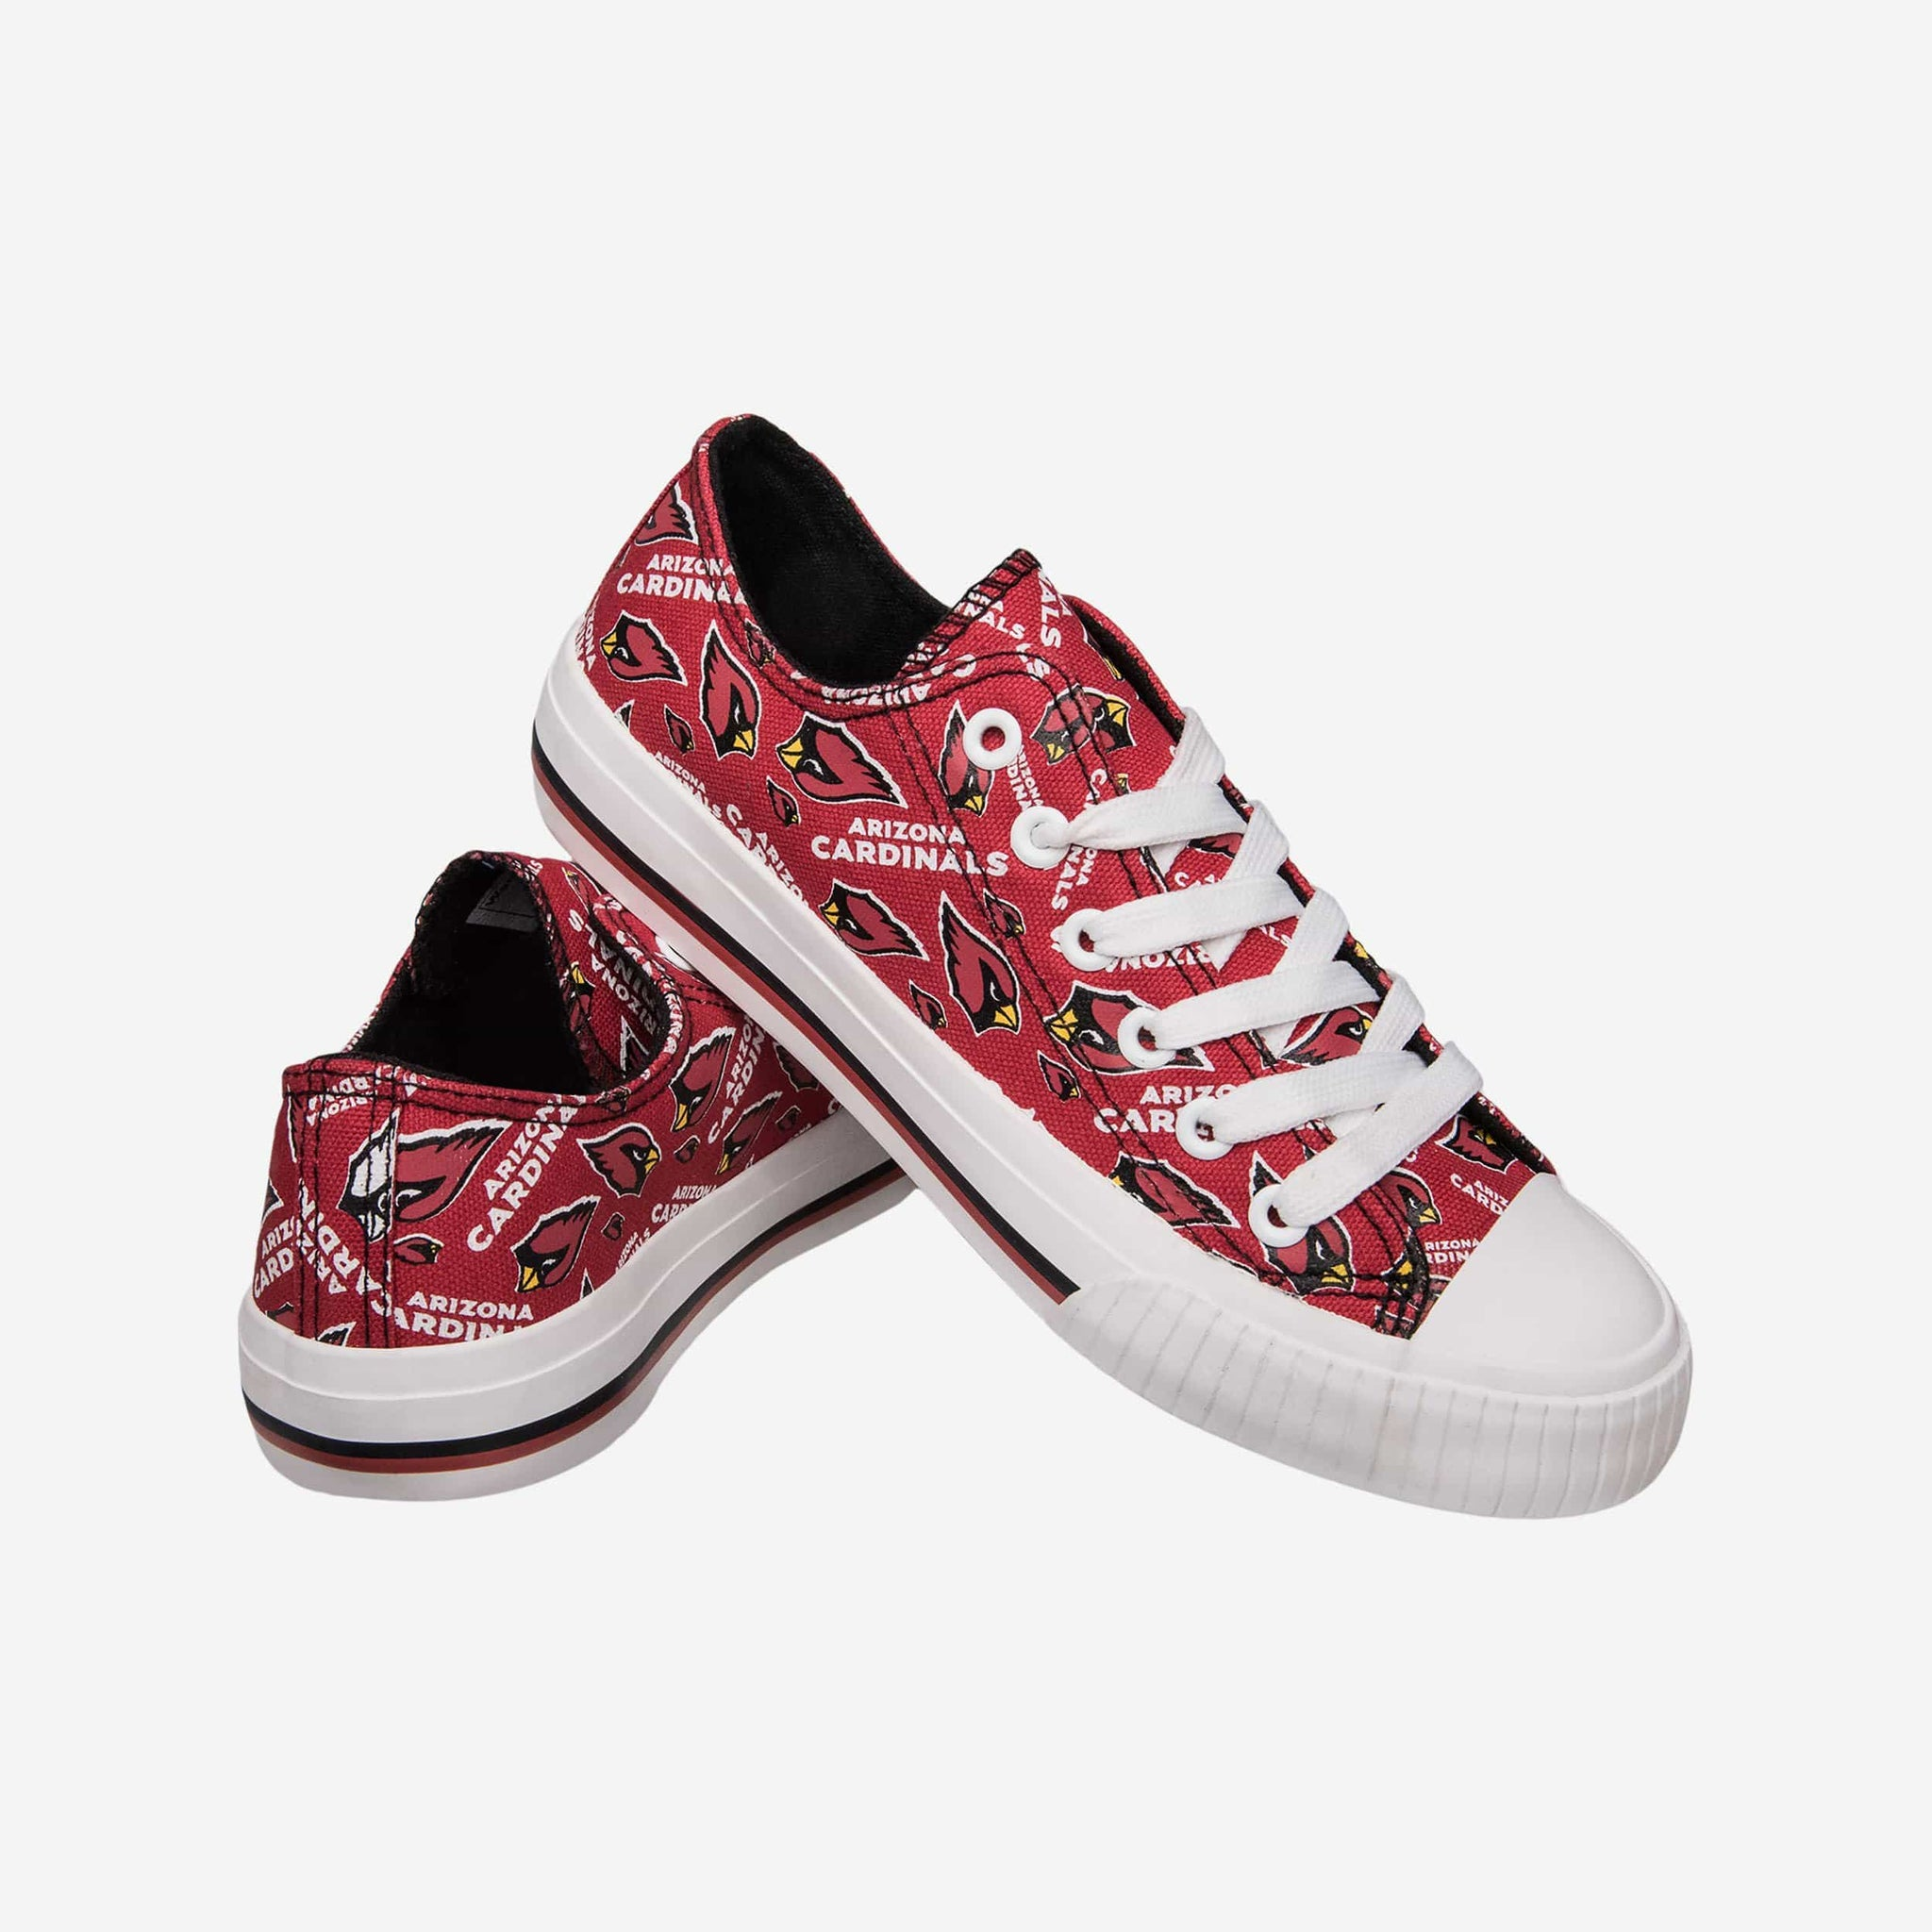 Arizona Cardinals Womens Low Top Repeat Print Canvas Shoe